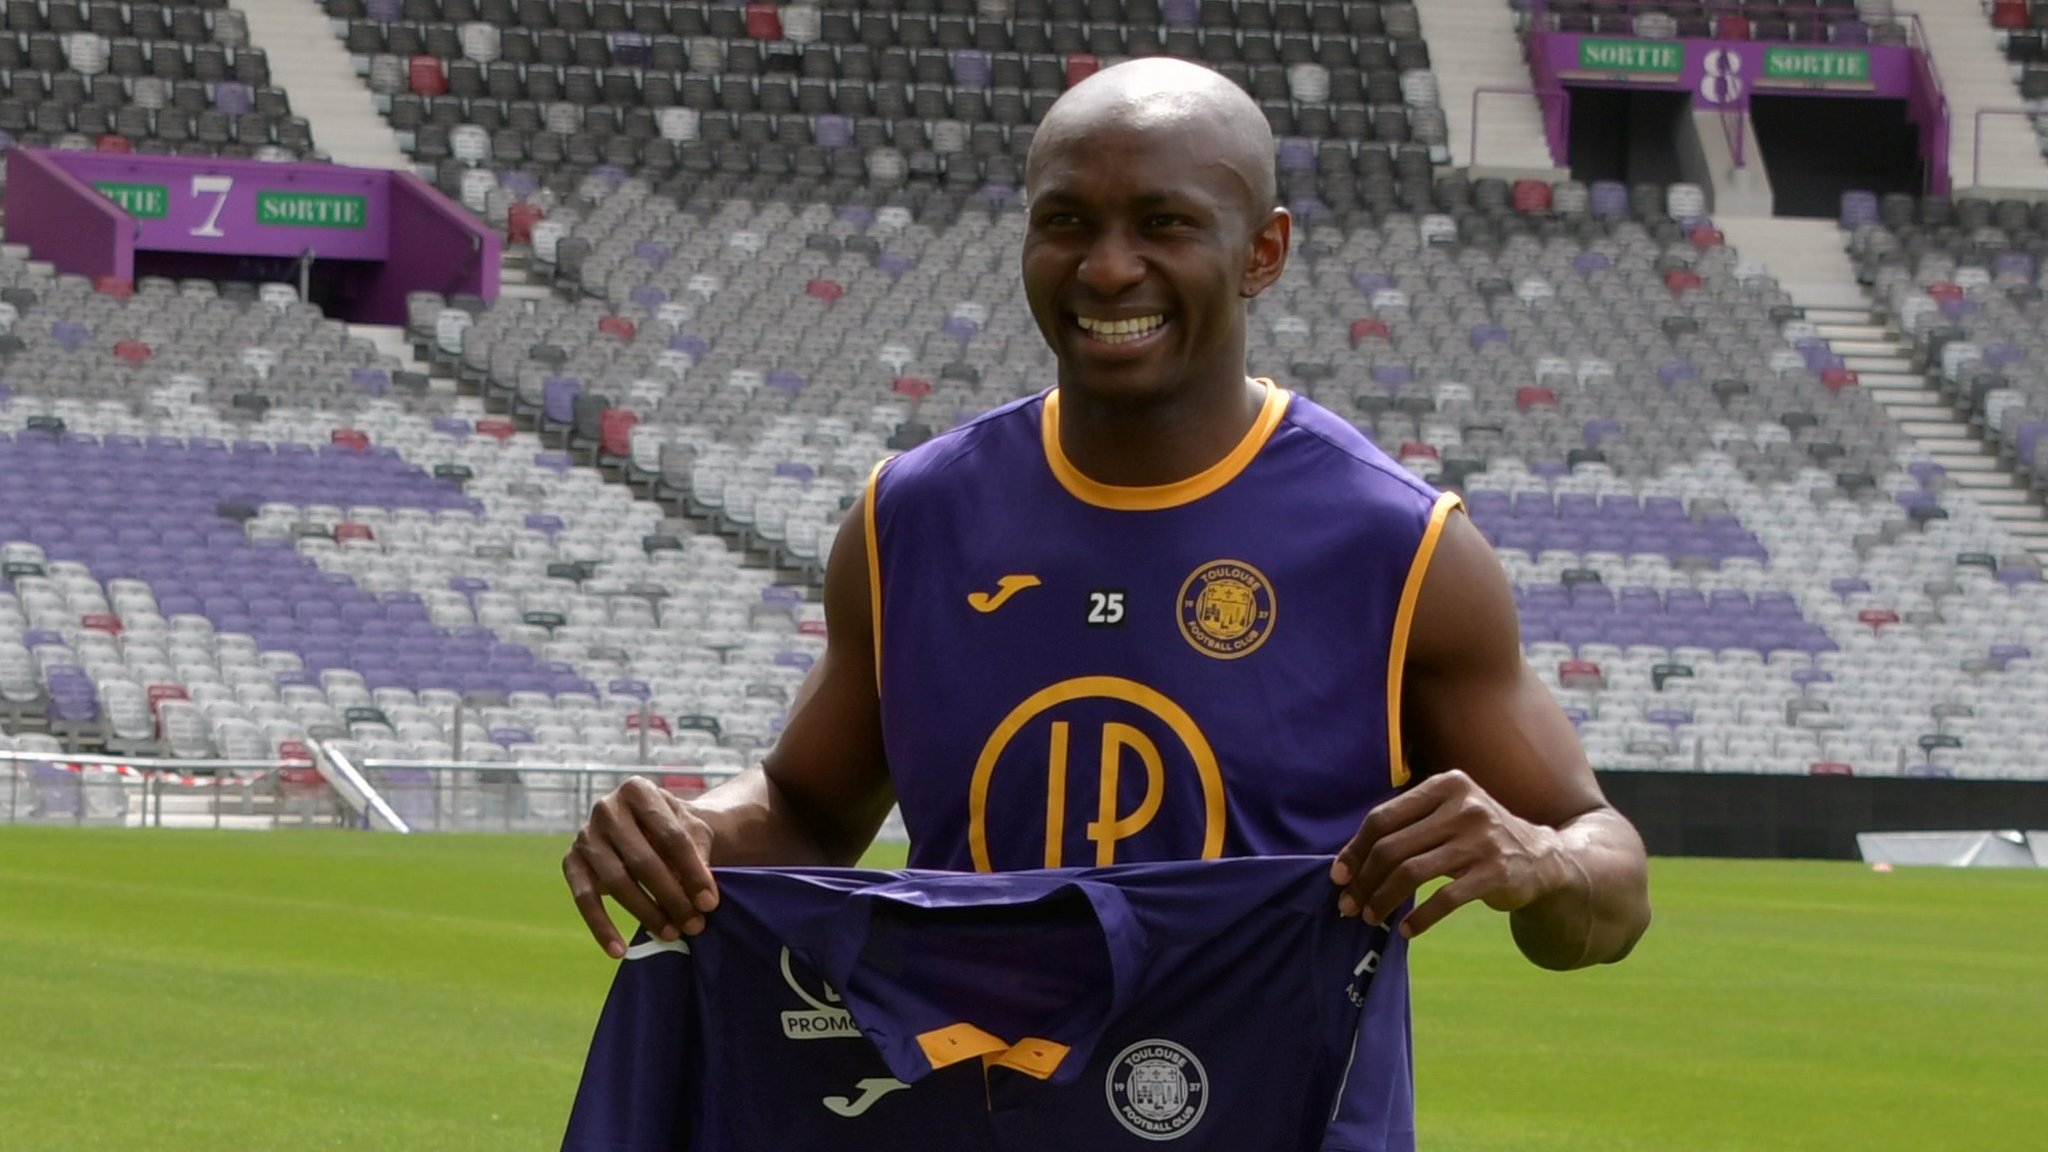 Cameroon's Stephane Mbia leaves French club Toulouse